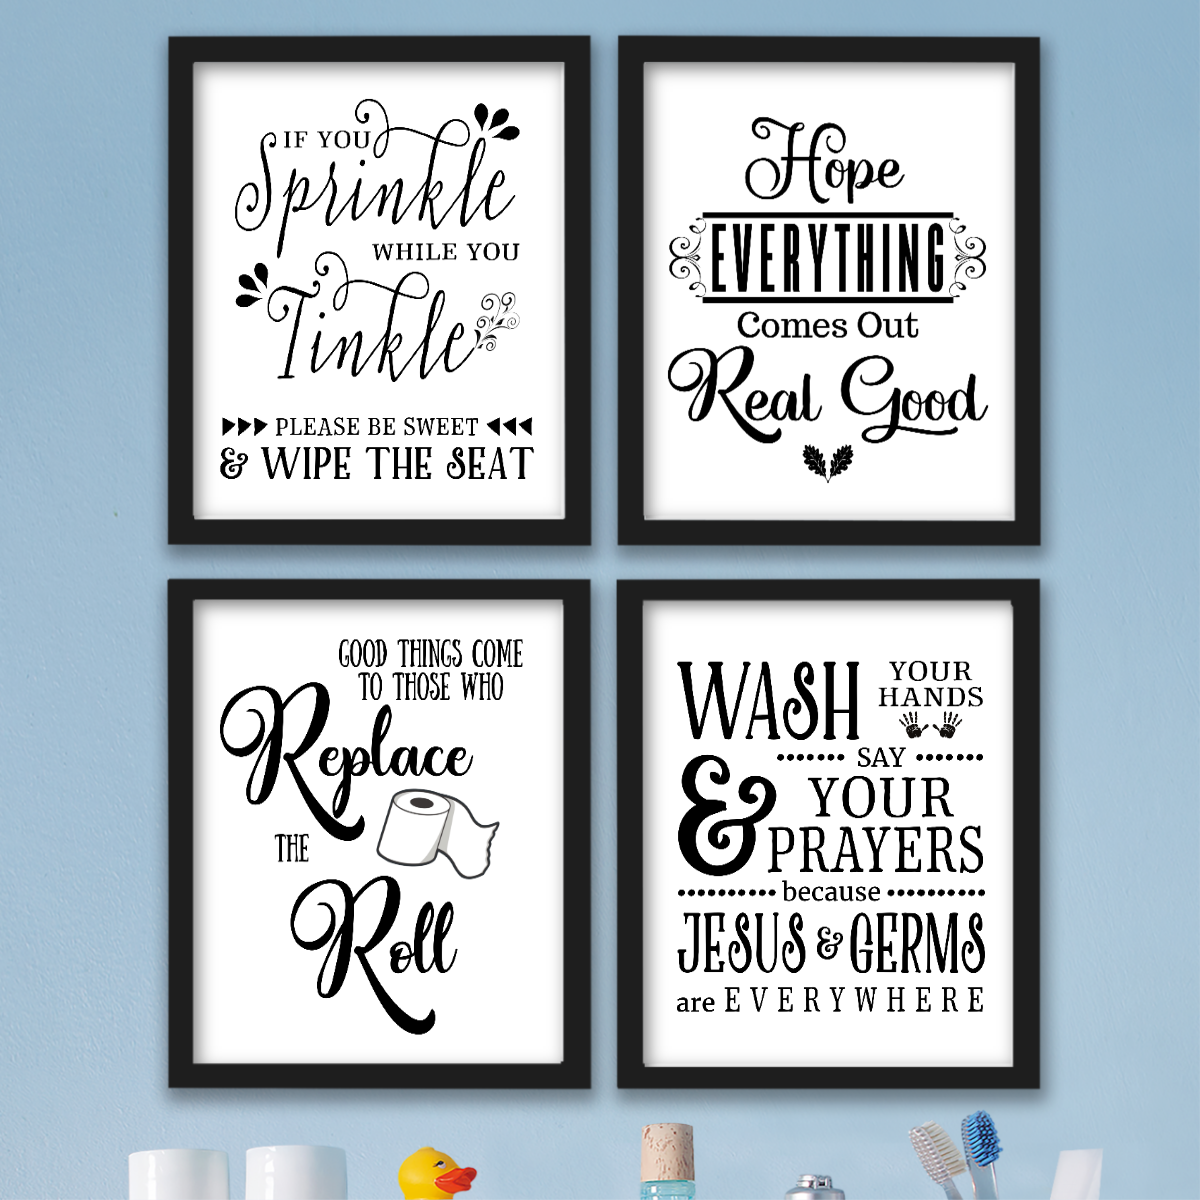 Funny Bathroom Wall Art Prints Farmhouse Decor Quotes Signs Pictures Gag Gift 4